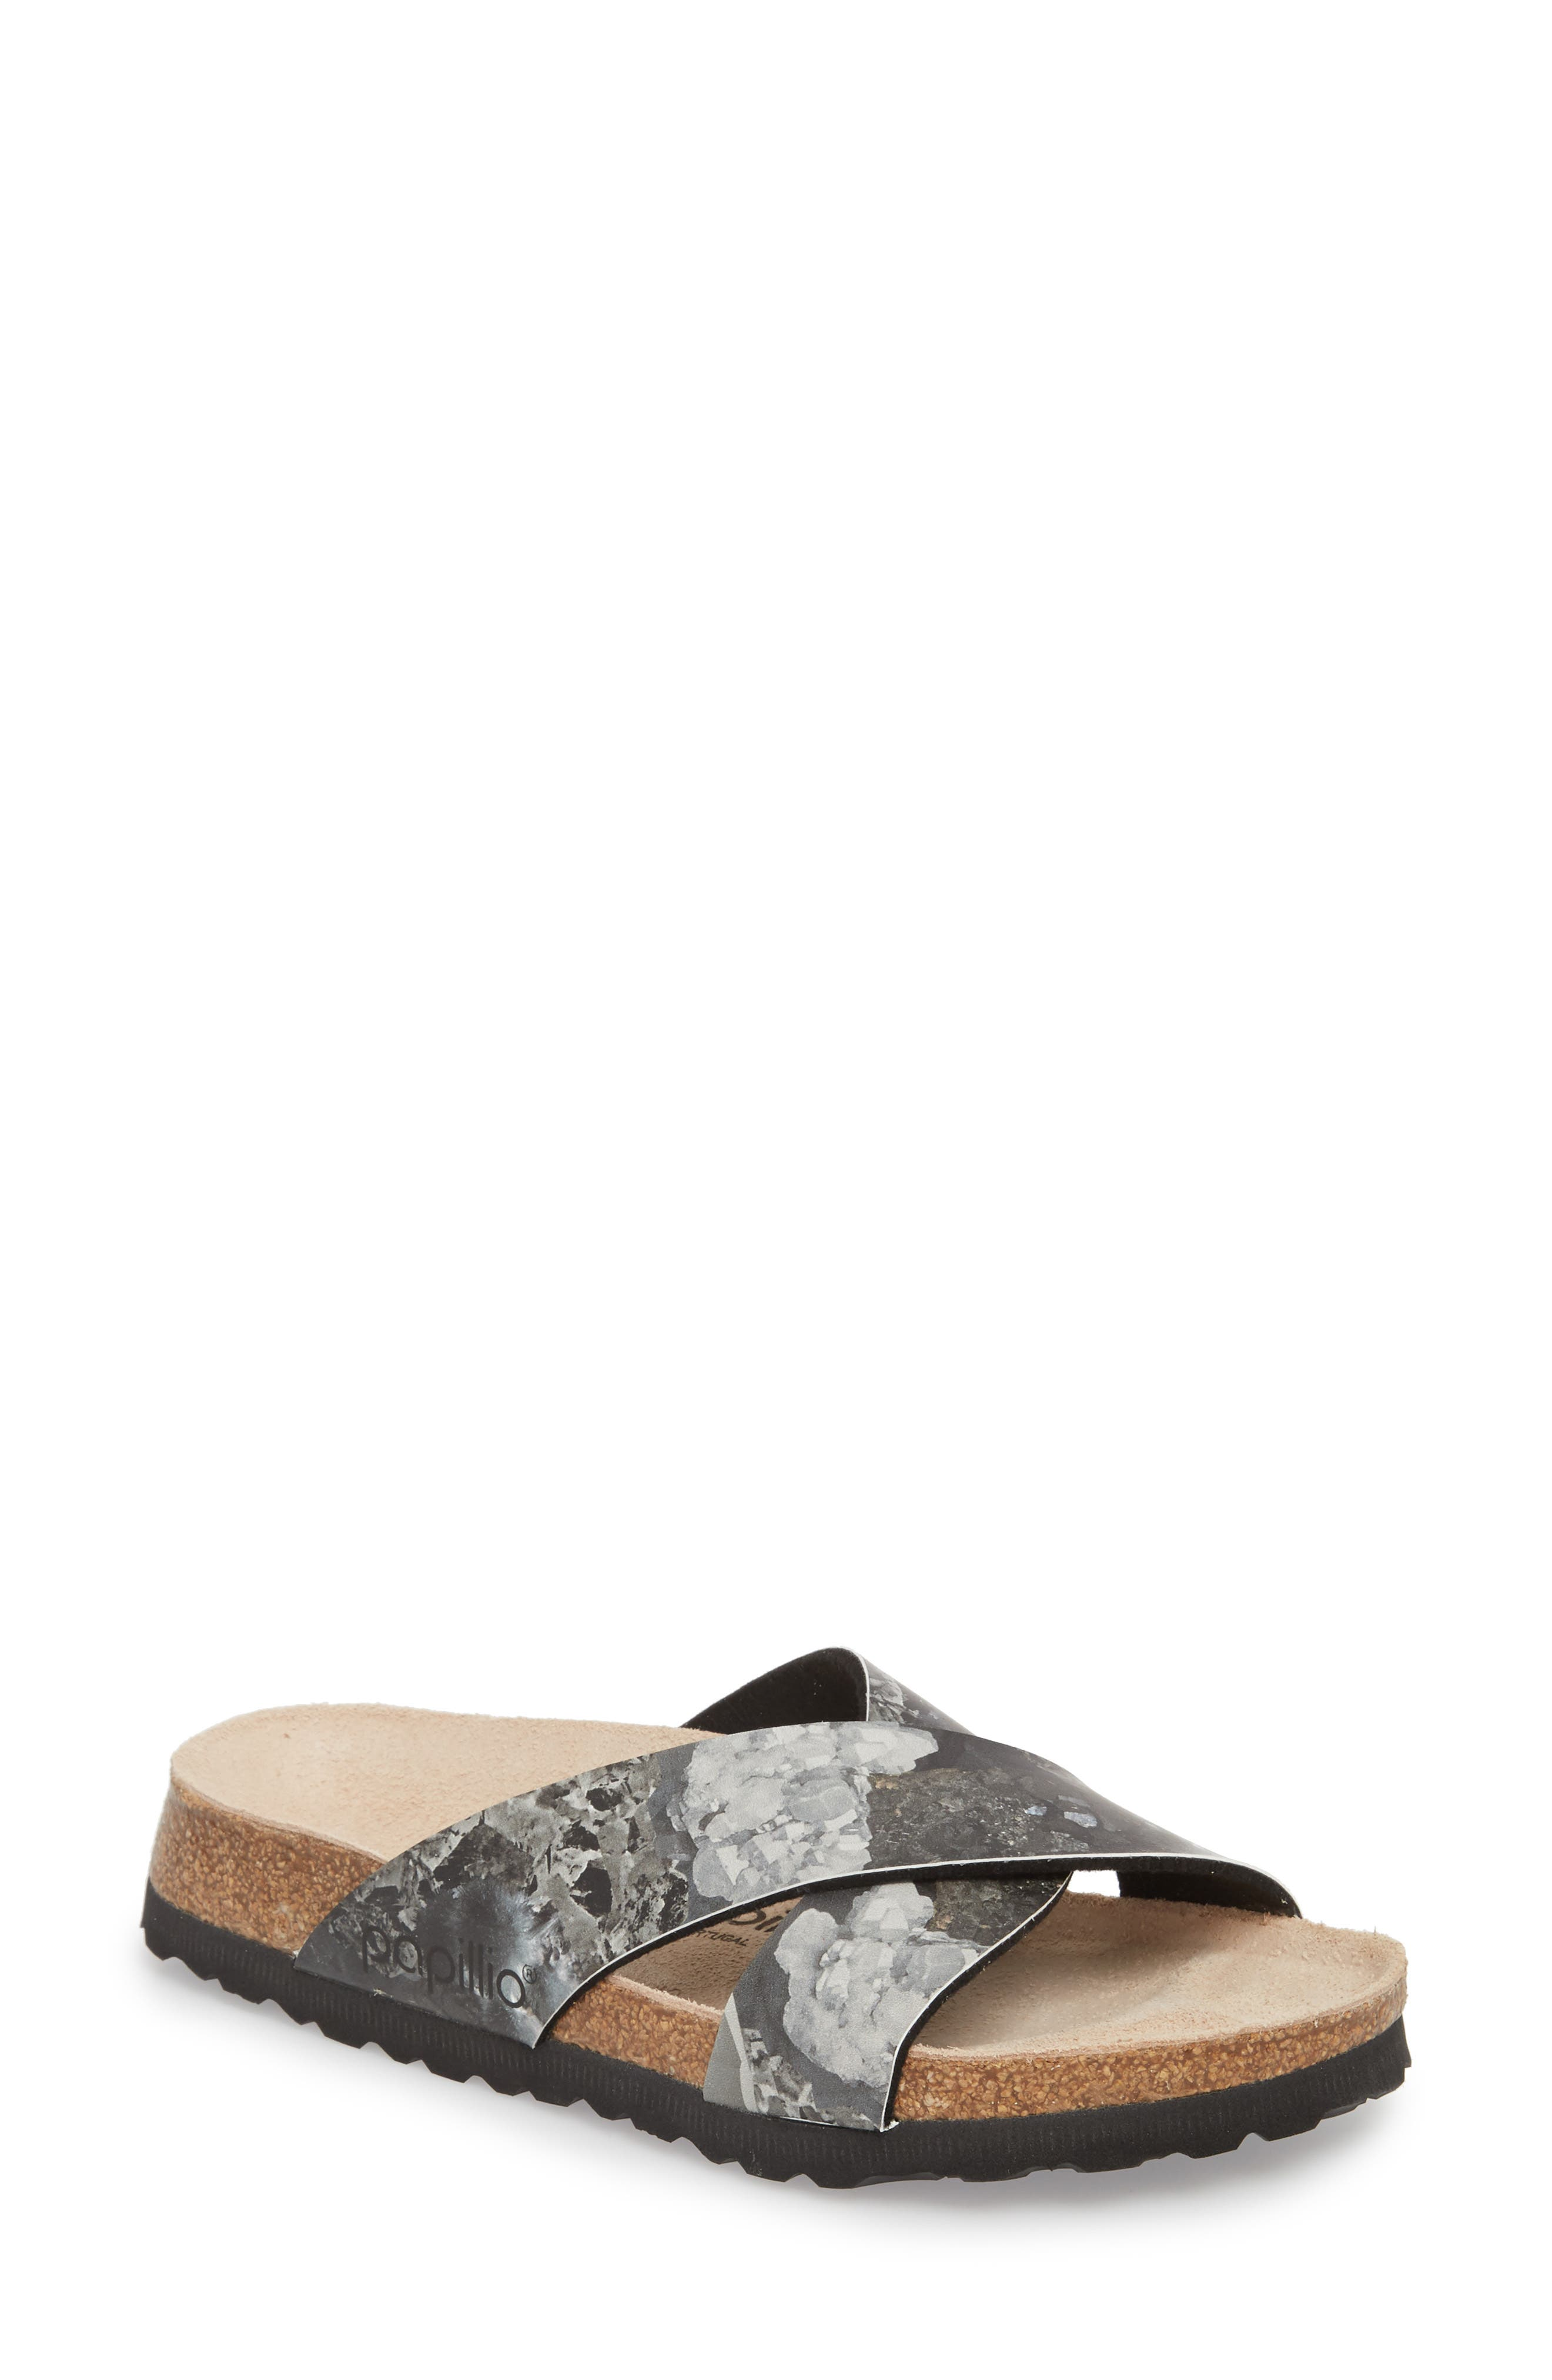 Daytona Crystal Slide Sandal,                             Main thumbnail 1, color,                             001